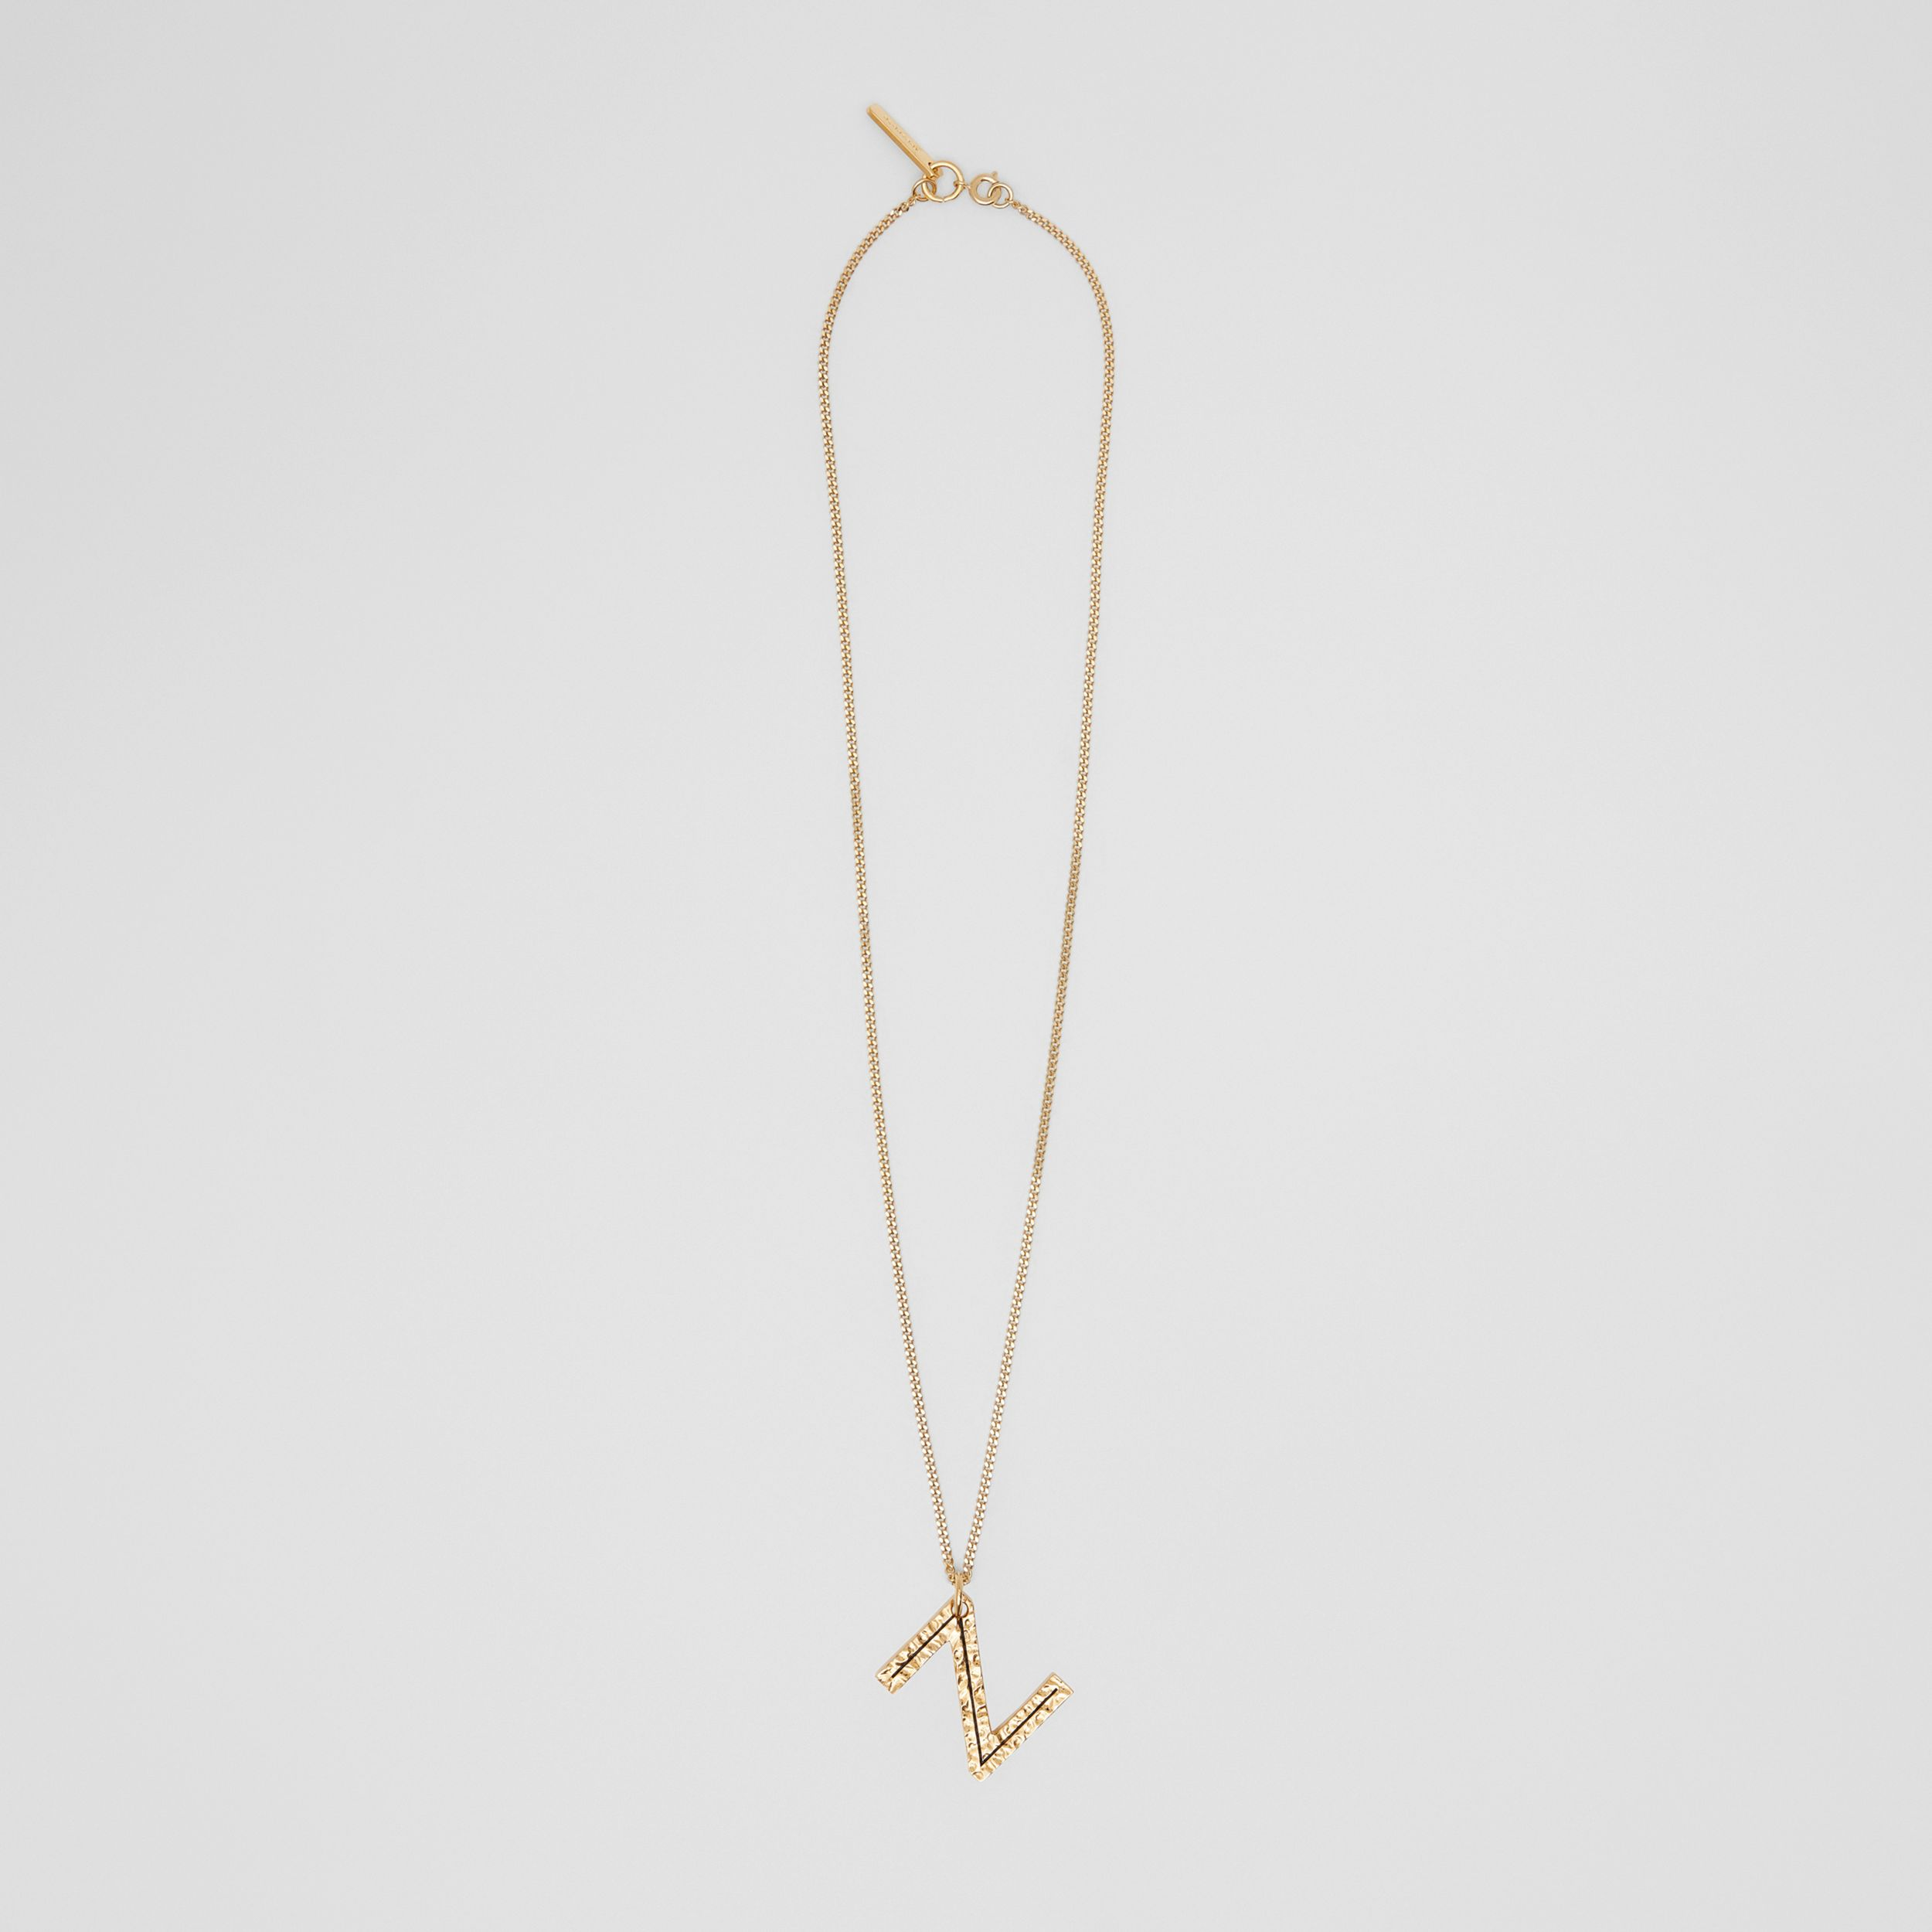 'Z' Alphabet Charm Gold-plated Necklace in Light - Women | Burberry - 1